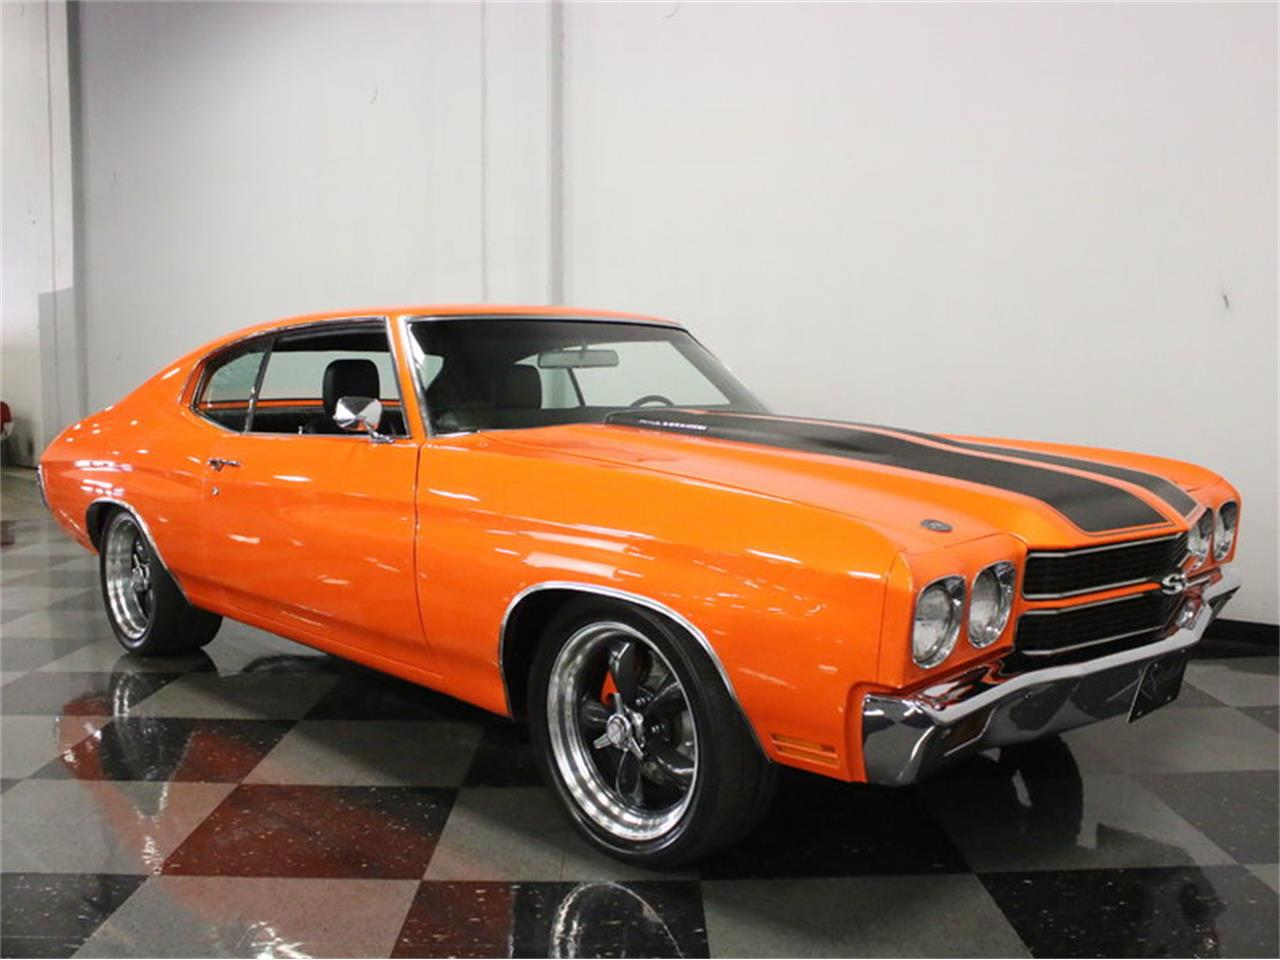 Large Picture of Classic 1970 Chevelle SS Pro Touring - $69,995.00 Offered by Streetside Classics - Dallas / Fort Worth - L8AH